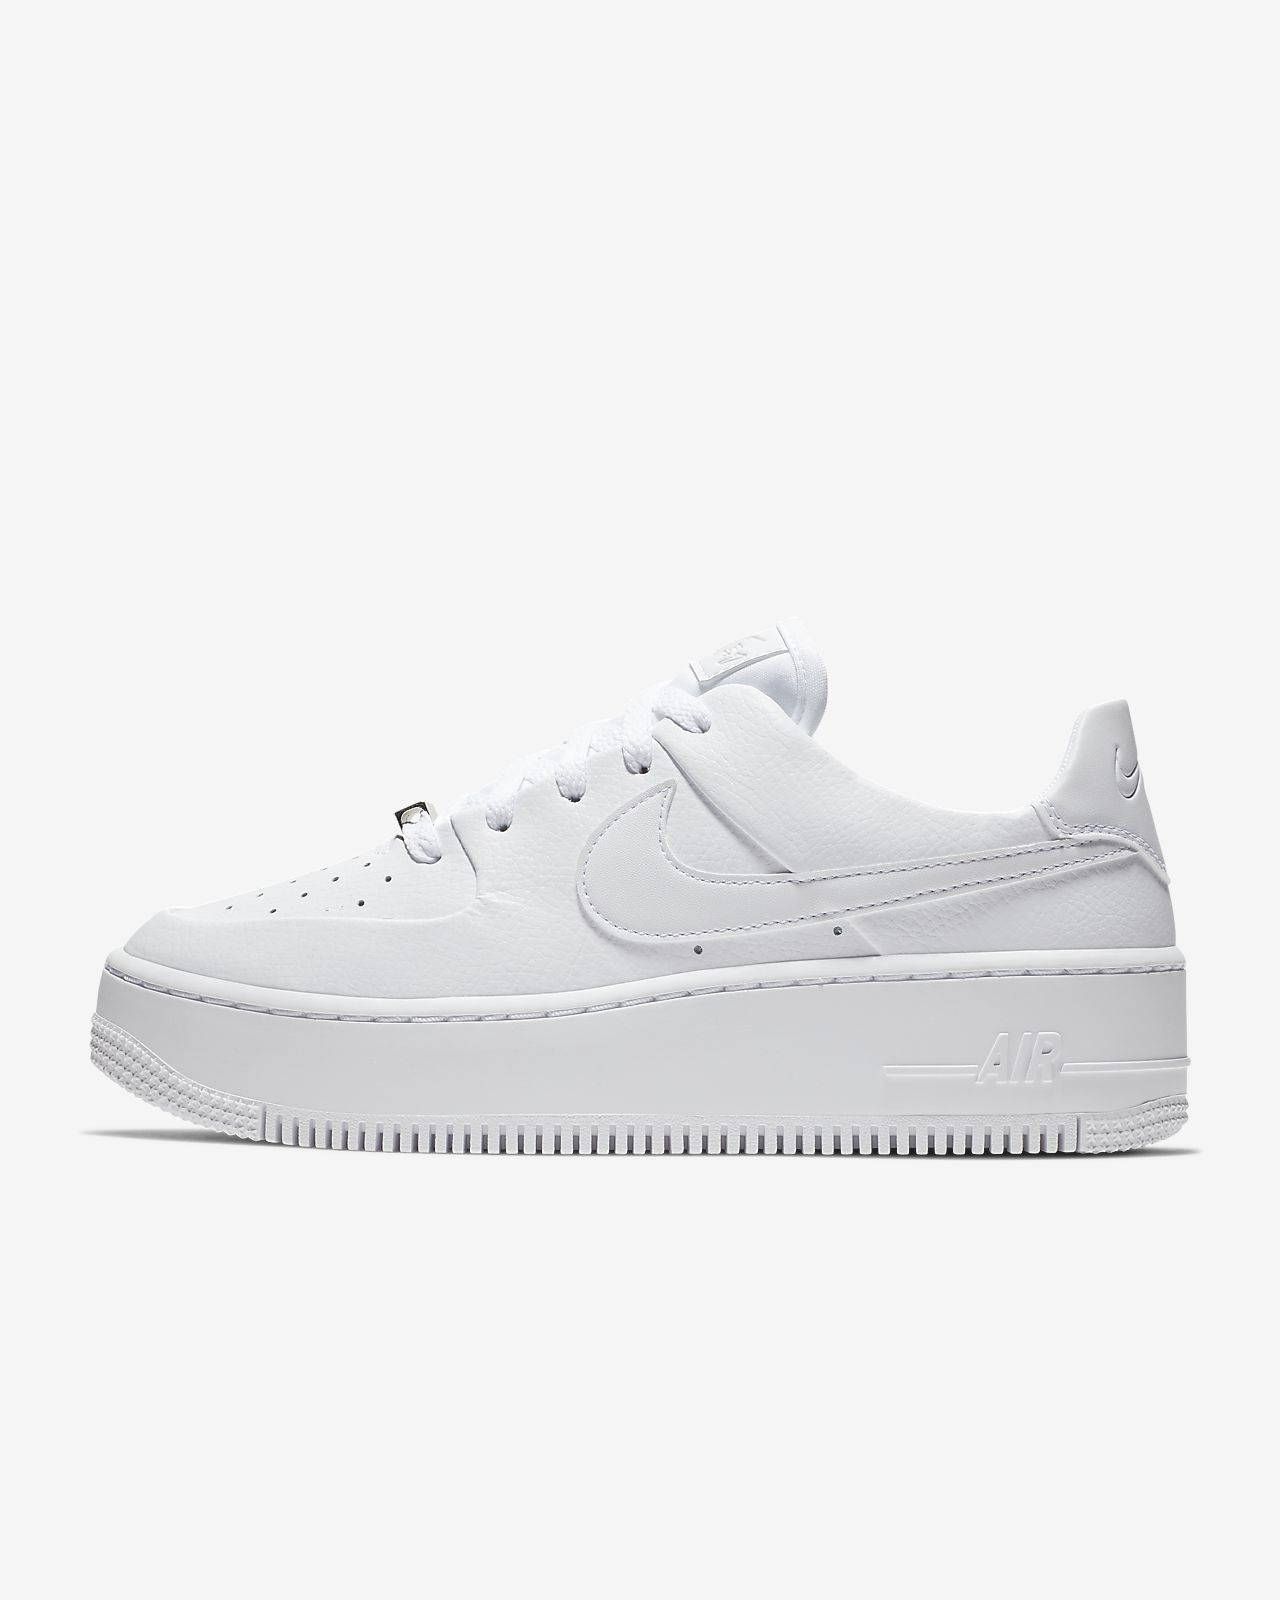 wholesale dealer 3d9c4 8f0a1 Nike Air Force 1 Sage Low Women s Shoe